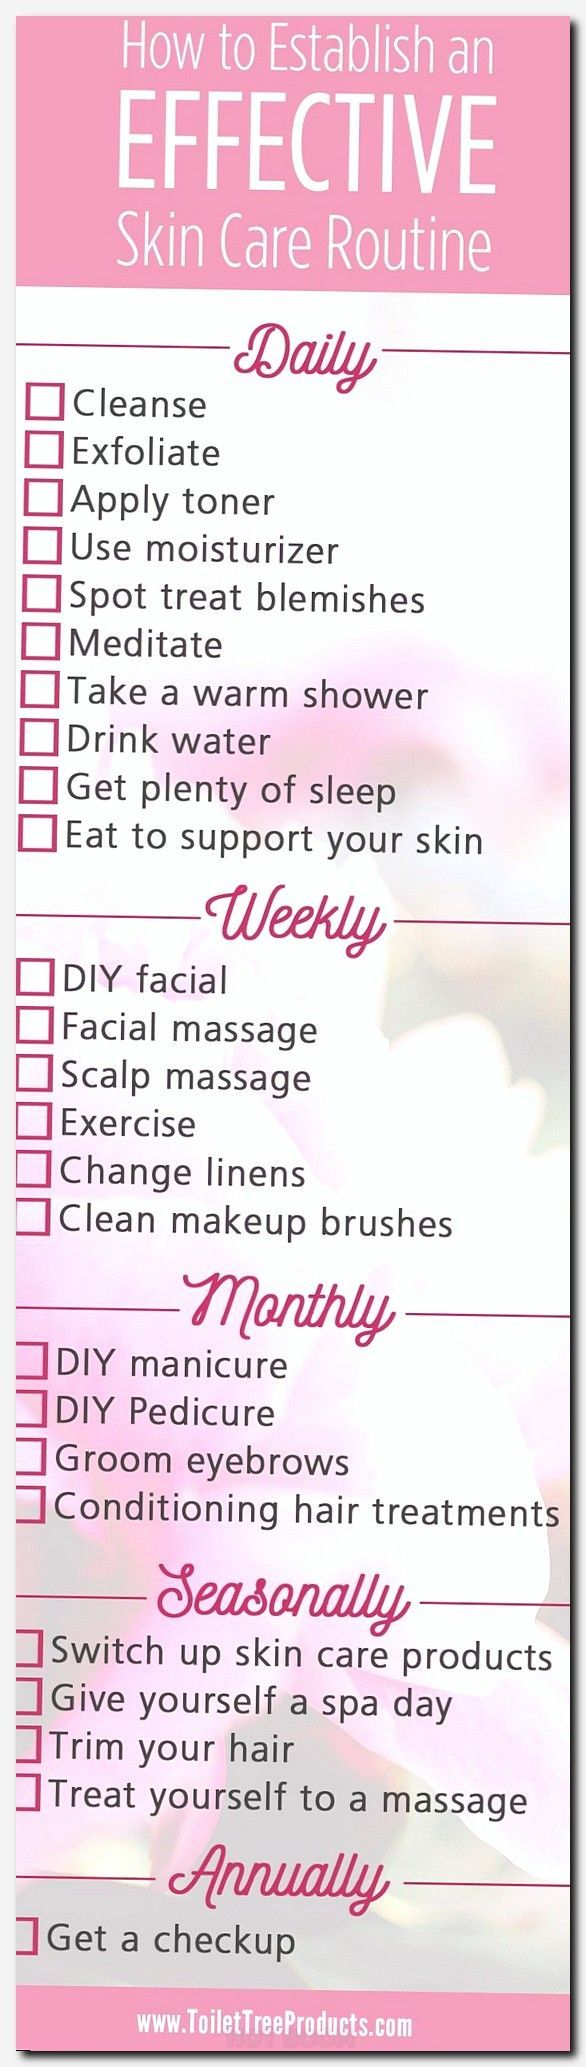 Skincare Skin Care Winter Skin Conditions Reduce Breakouts Best Way To Clear Skin In 2020 Skin Care Routine Steps Daily Skin Care Routine Best Skin Care Routine